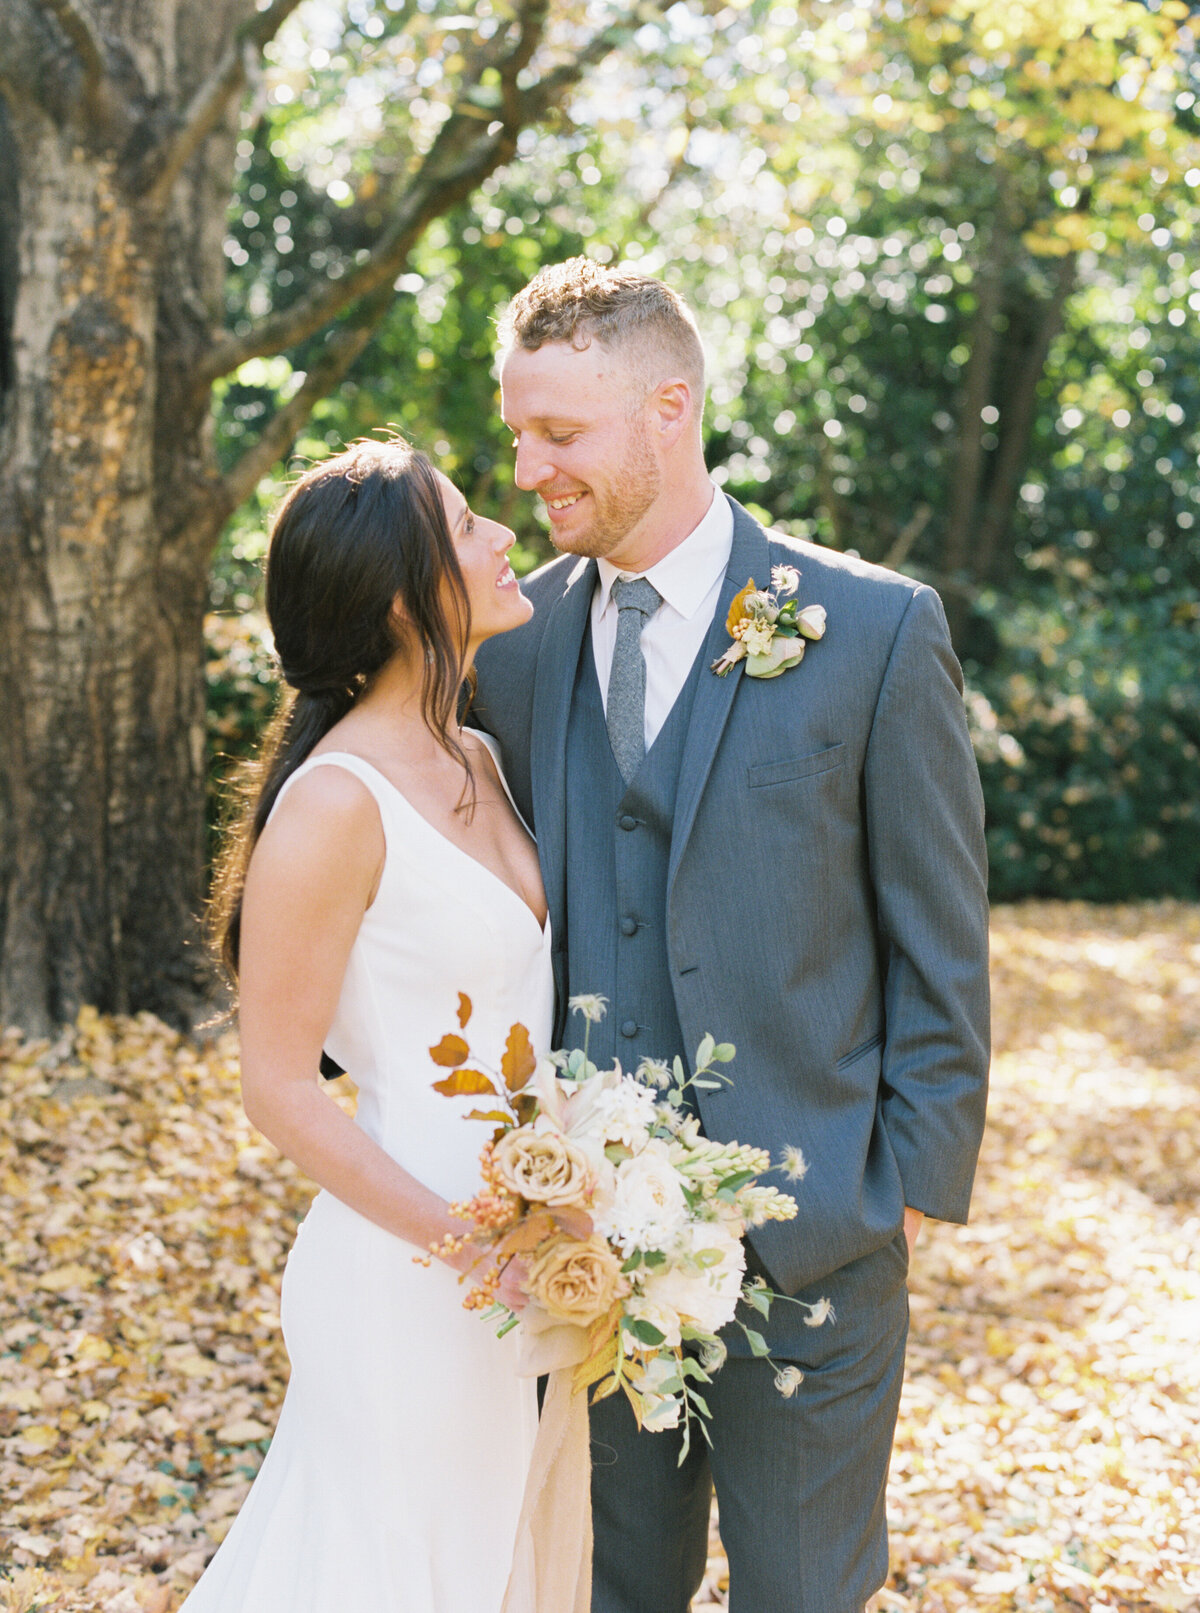 Meadowlark 1939 Atlanta Georgia Wedding | Shauna Veasey Photography | Atlanta Film Photographer